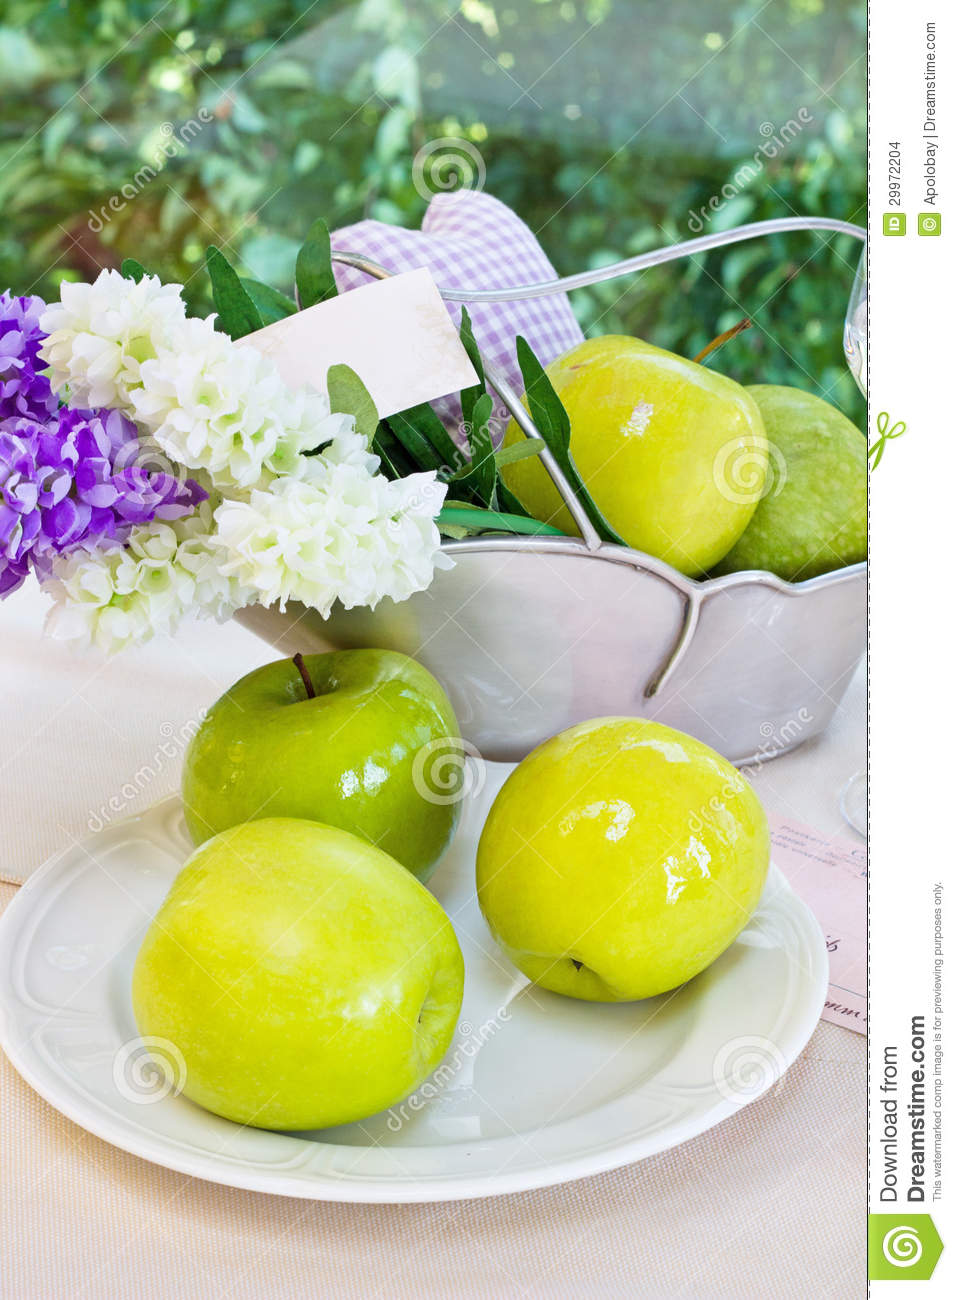 Ripe green apples and a vase with hyacinths on a p